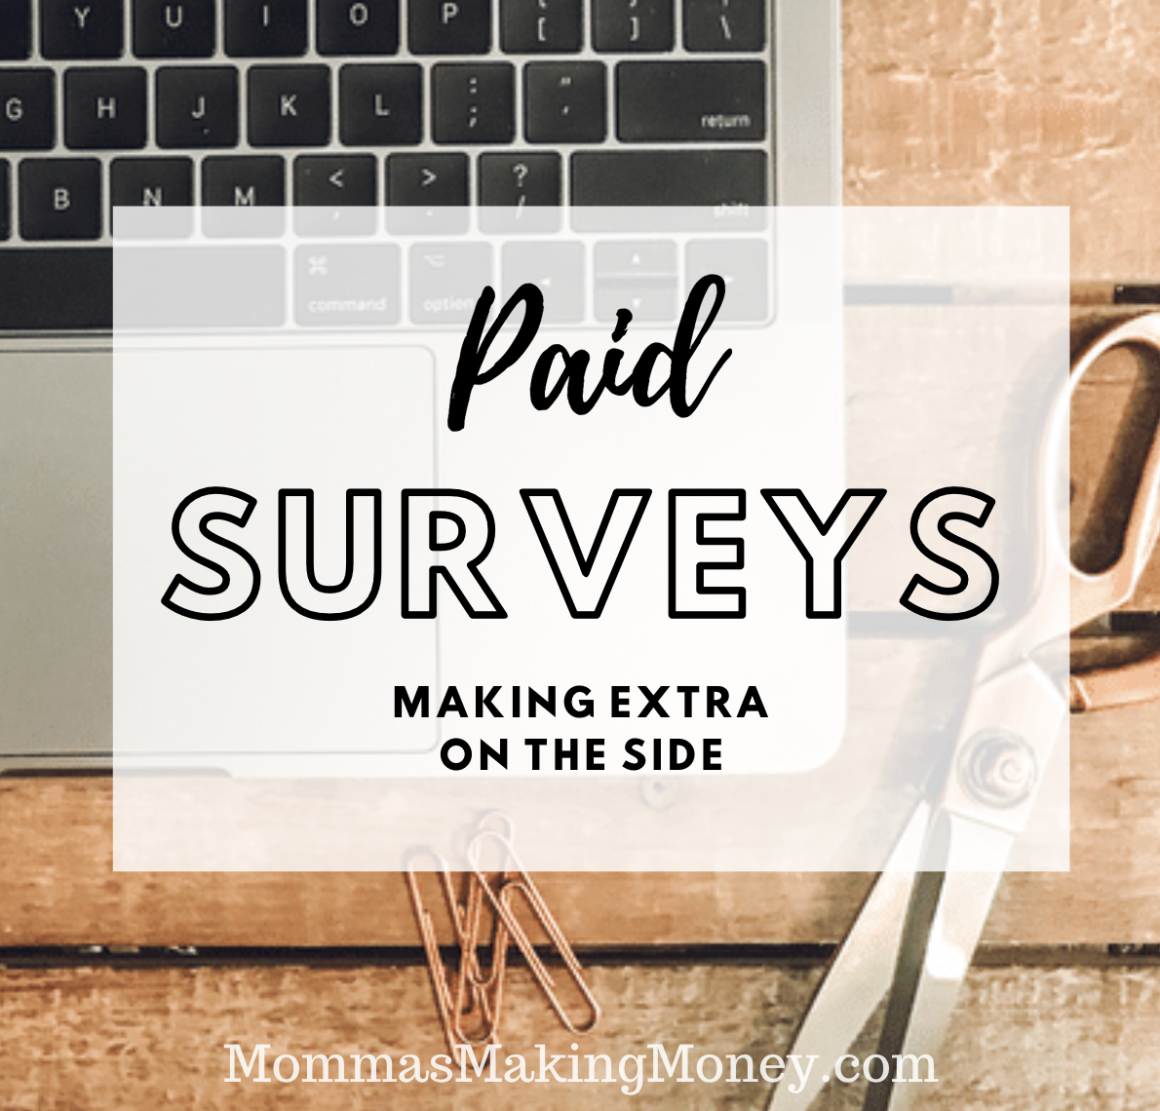 Paid Surveys-Making extra on the side